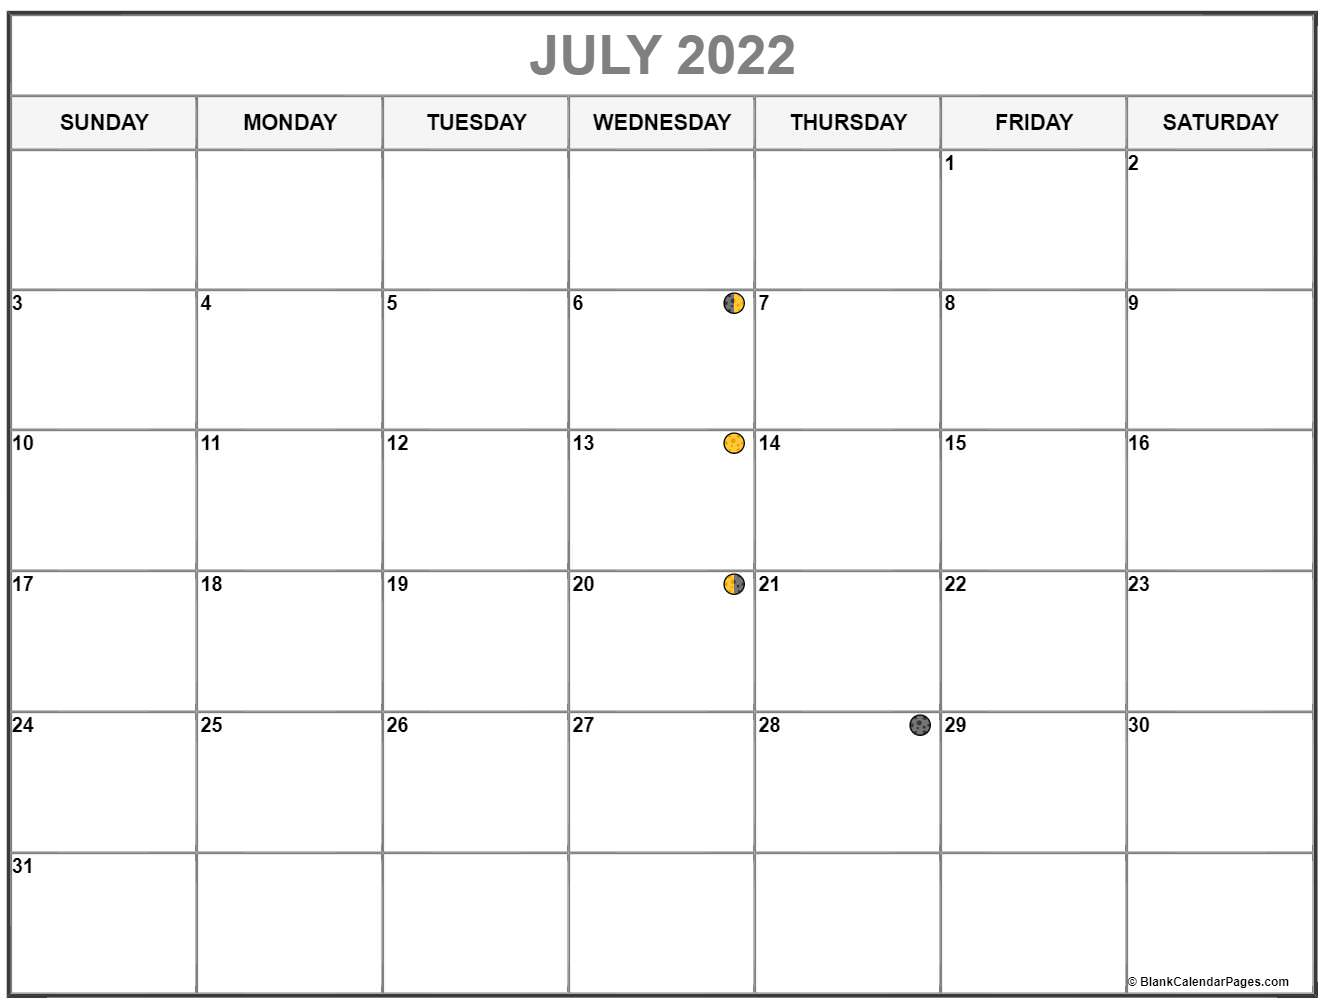 July 2022 lunar calendar. Moon phases with USA holidays